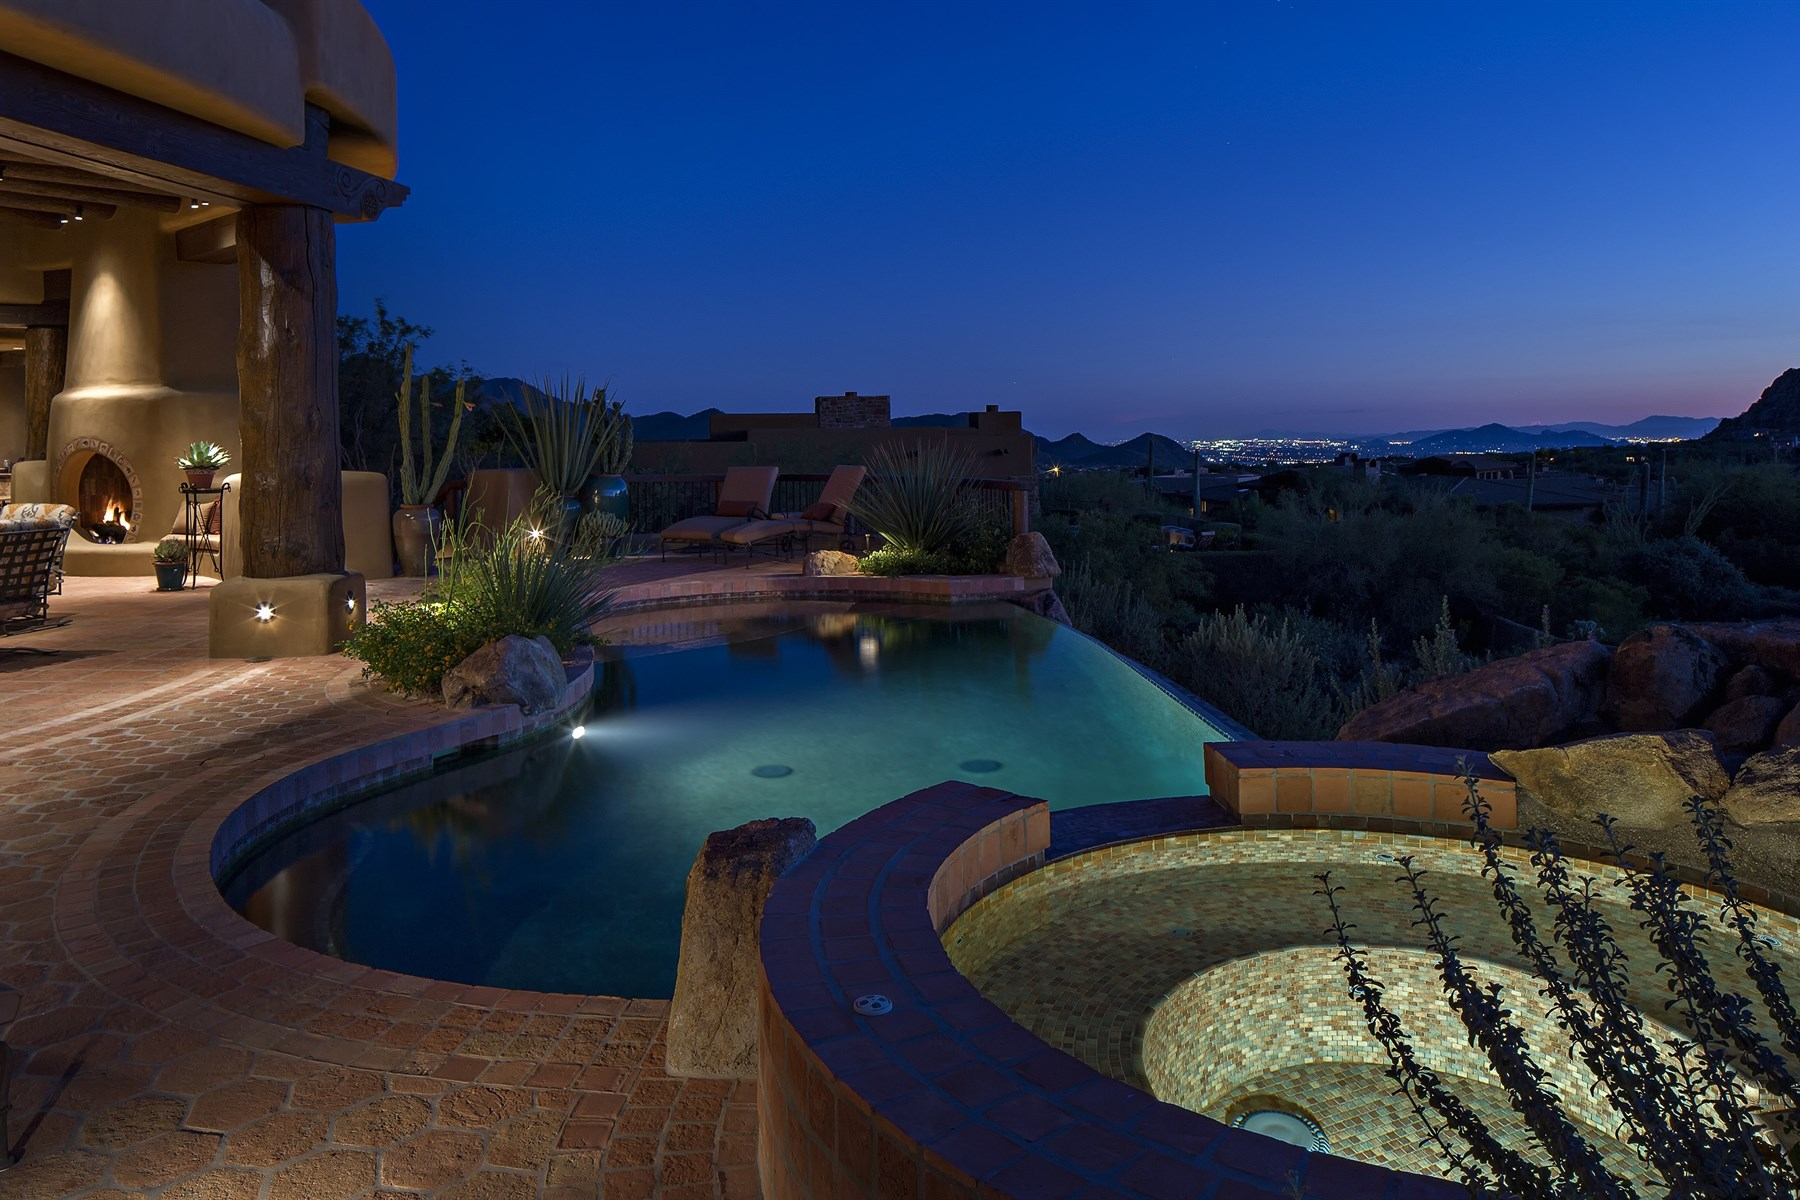 Частный односемейный дом для того Продажа на Custom Pueblo-Style Home In The Exclusive Gated Community Of Privada 10585 E Crescent Moon Drive #48 Scottsdale, Аризона 85262 Соединенные Штаты